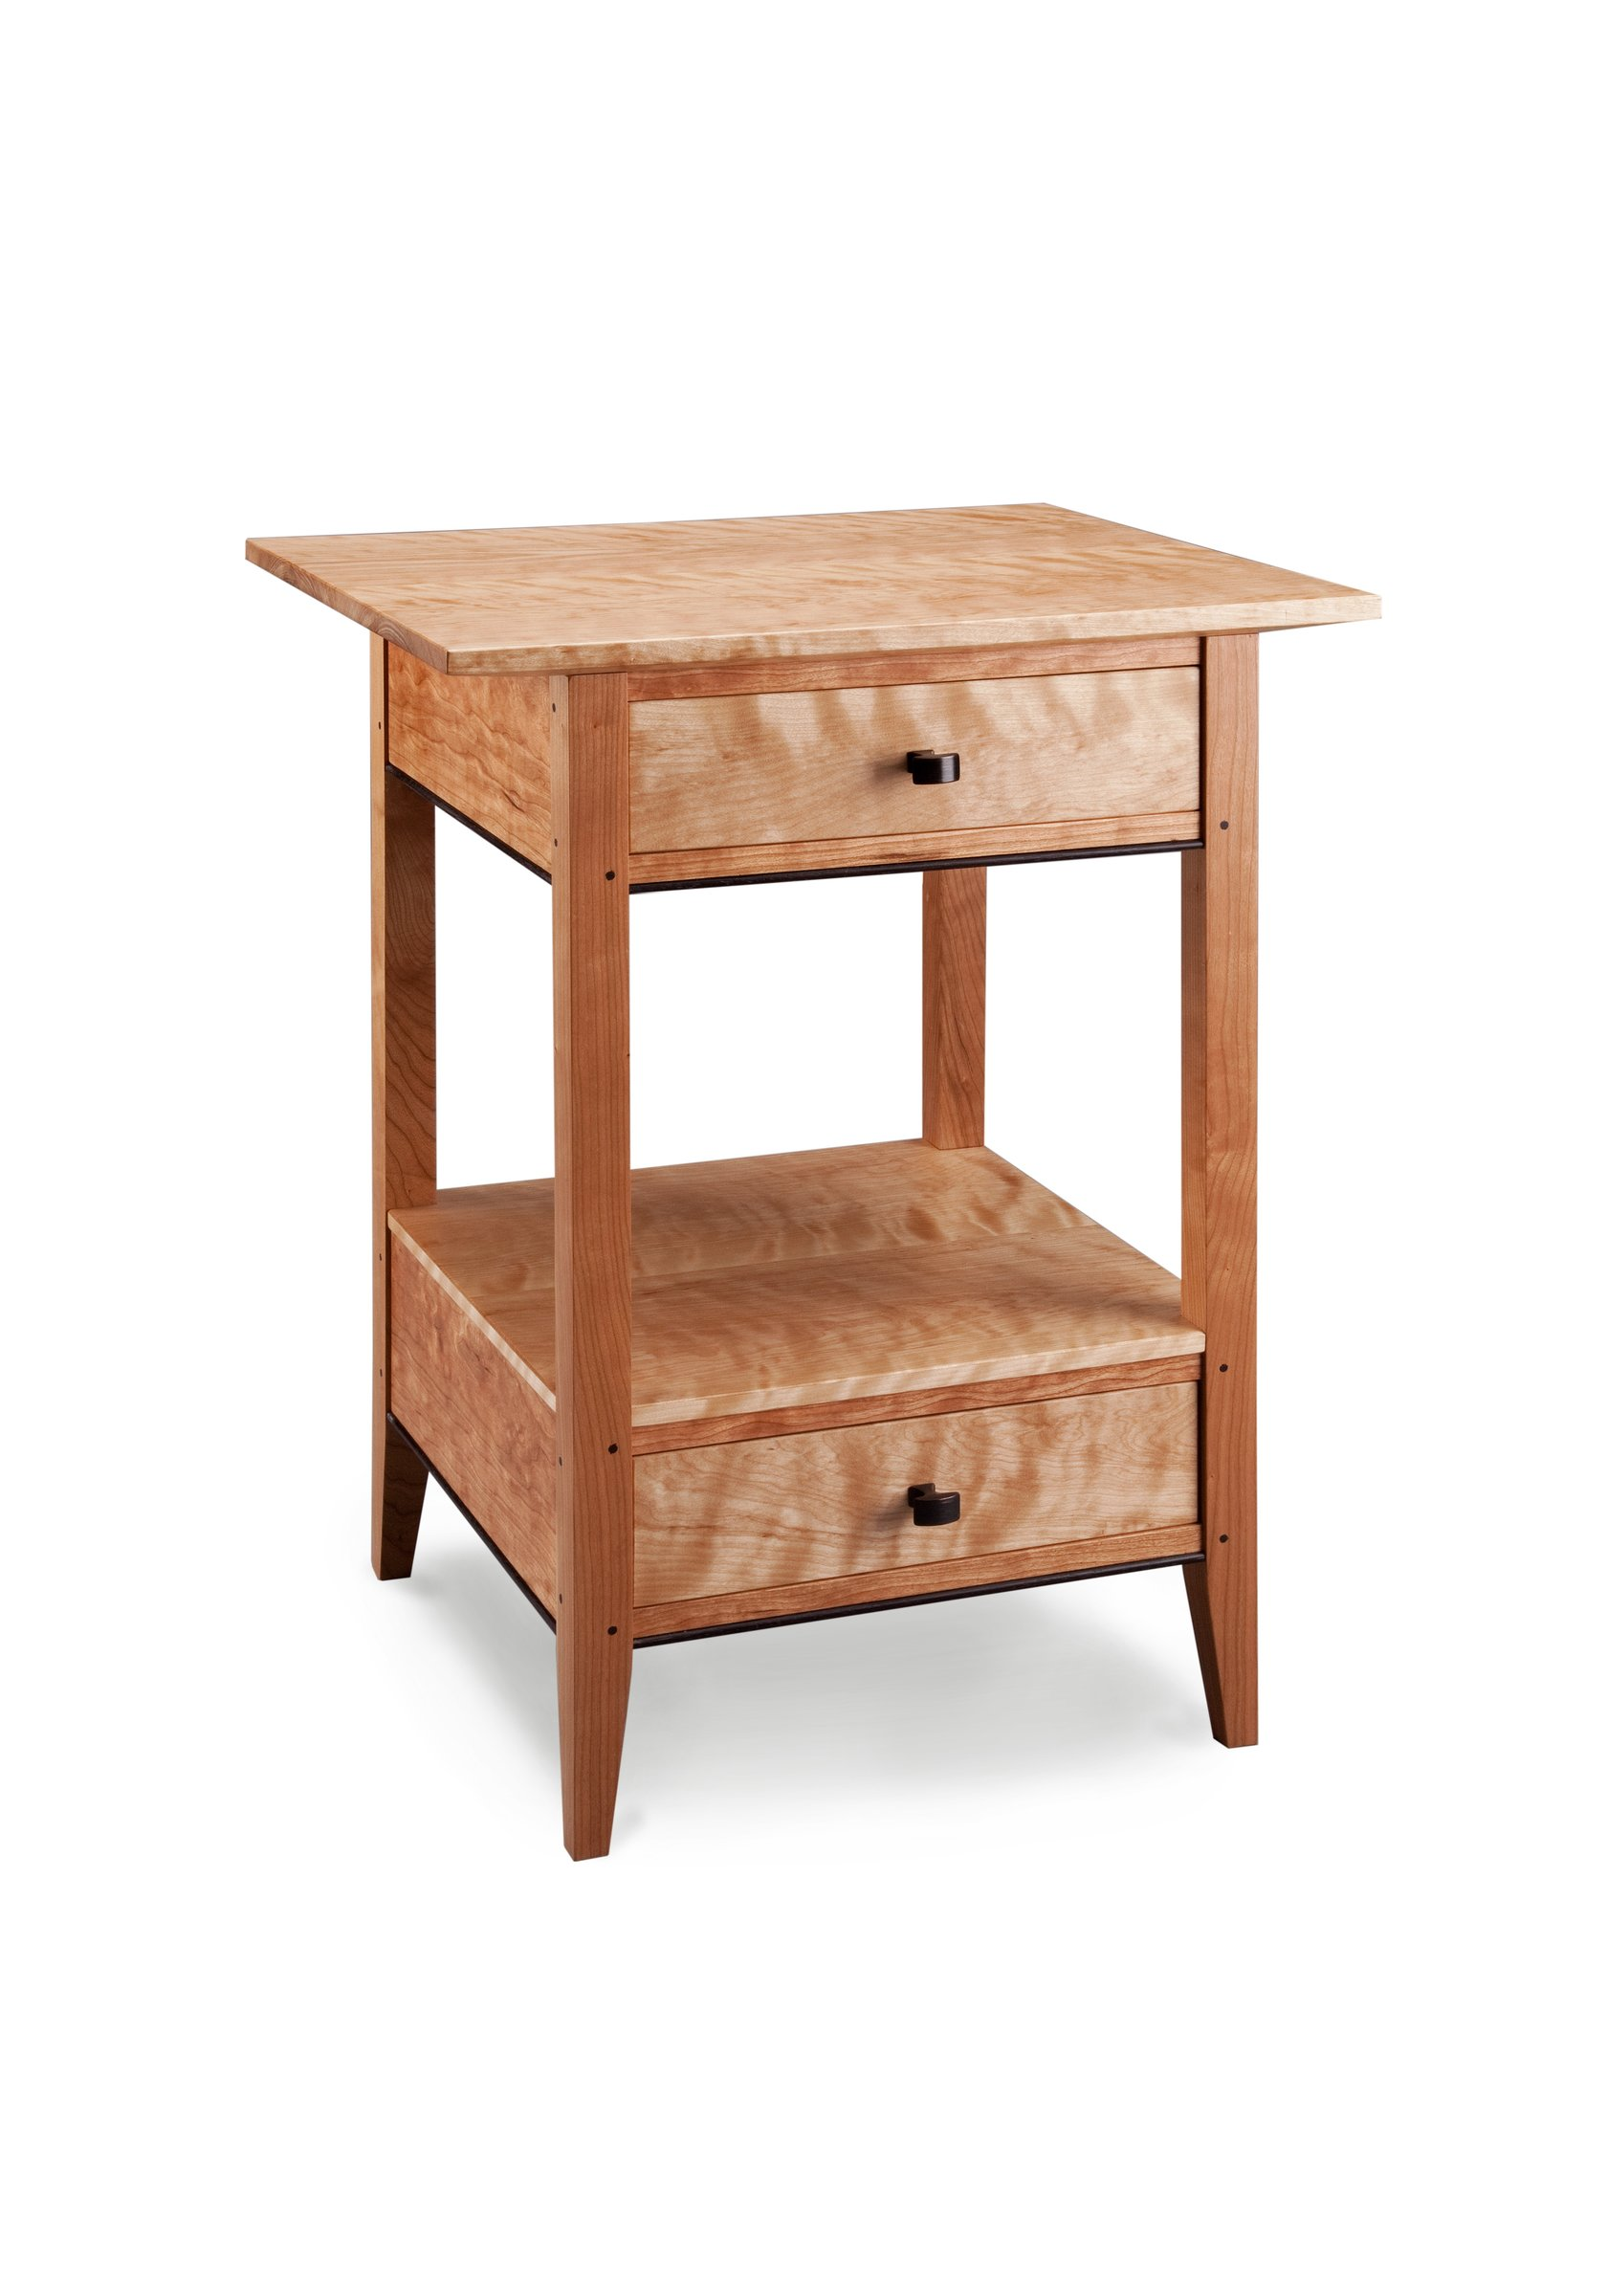 Two drawer end table by tom dumke wood side table for End tables with drawers